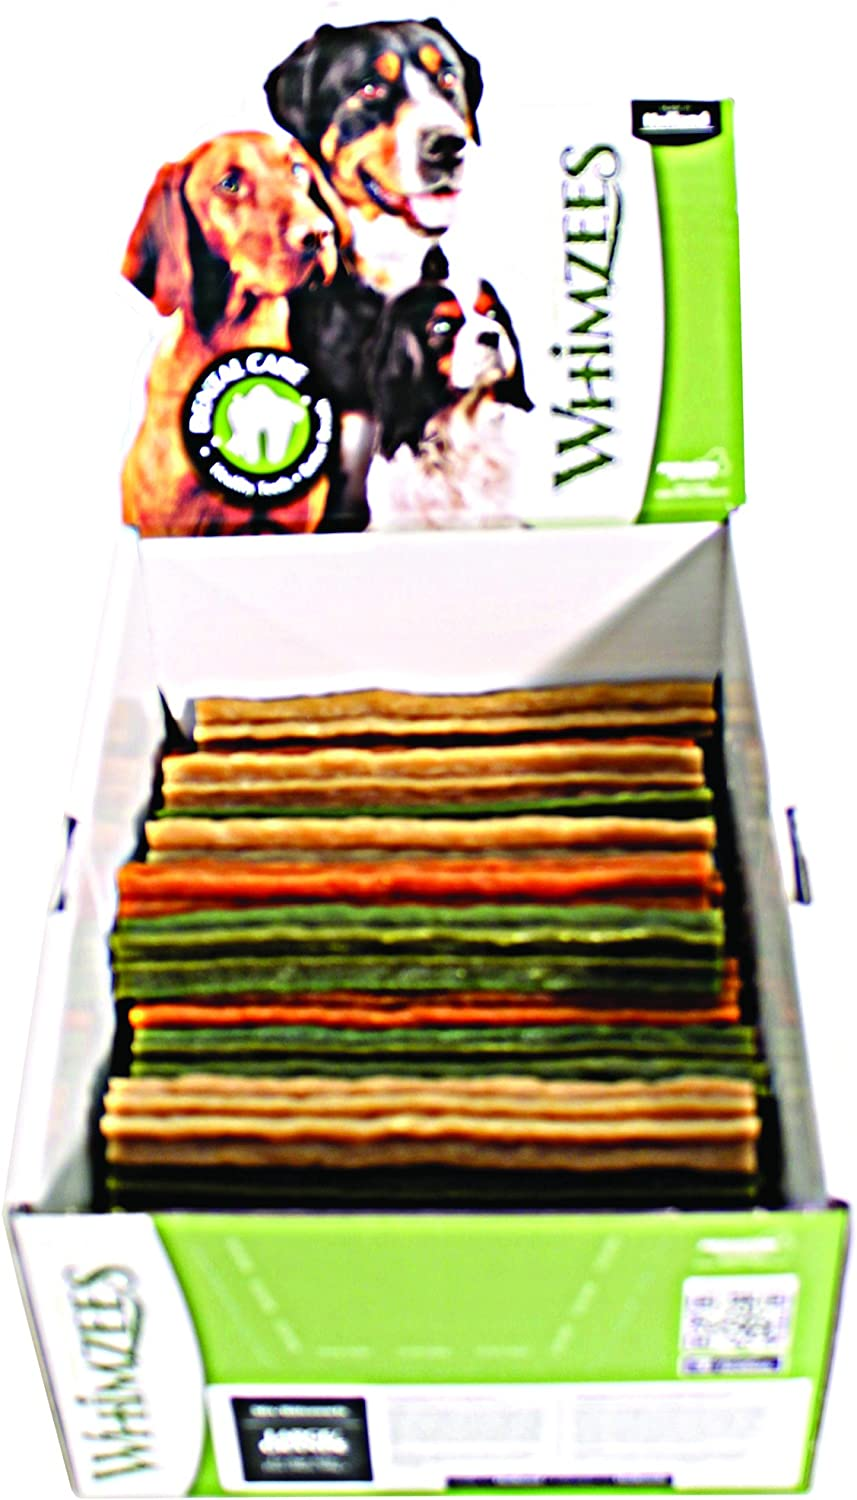 Paragon Whimzees Display Box Stix Dental Treat for Dogs